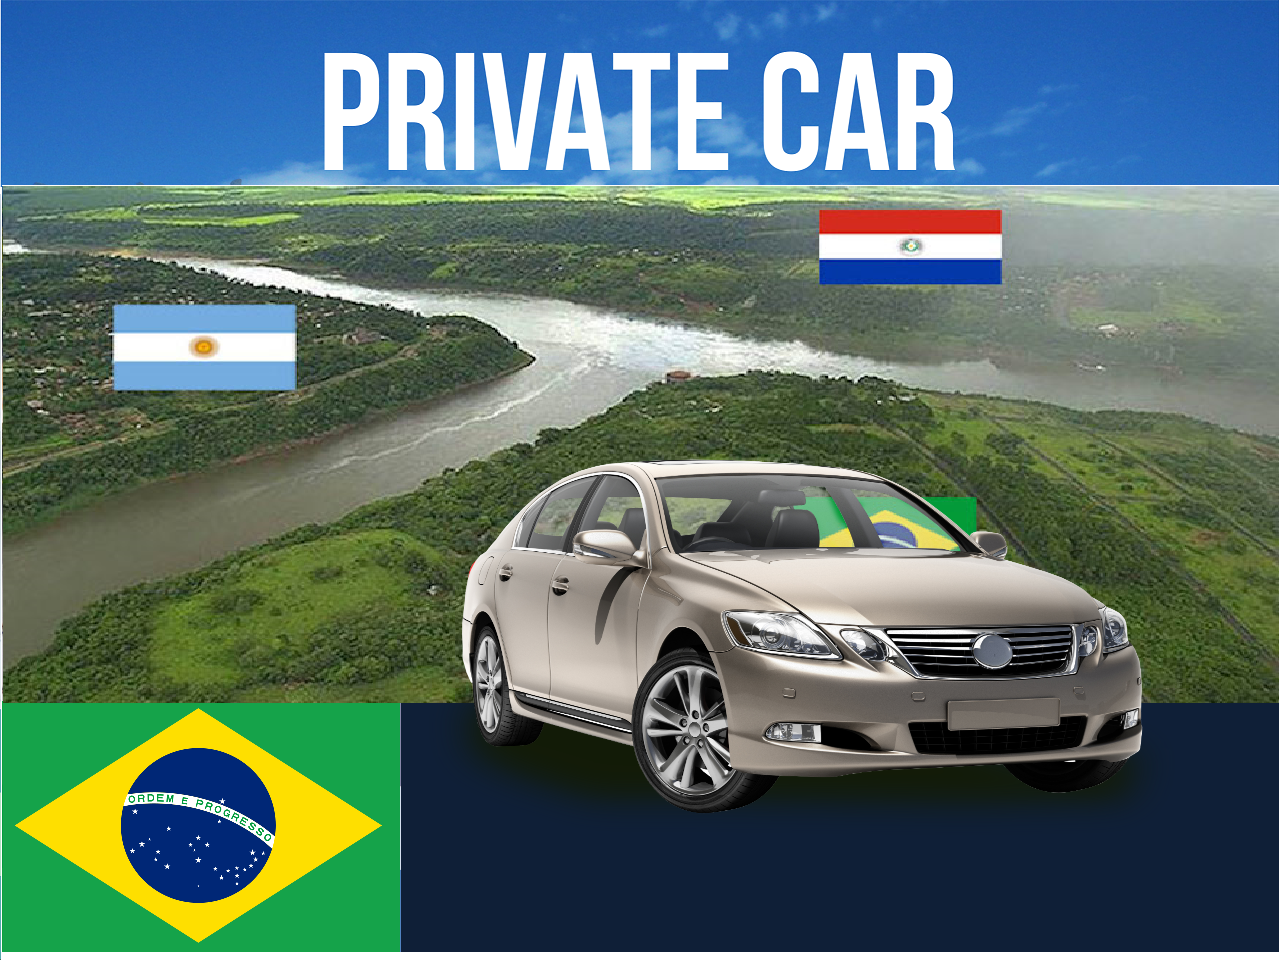 Brazilian viewpoint of 3 countries - Brazil, Argentina & Paraguay